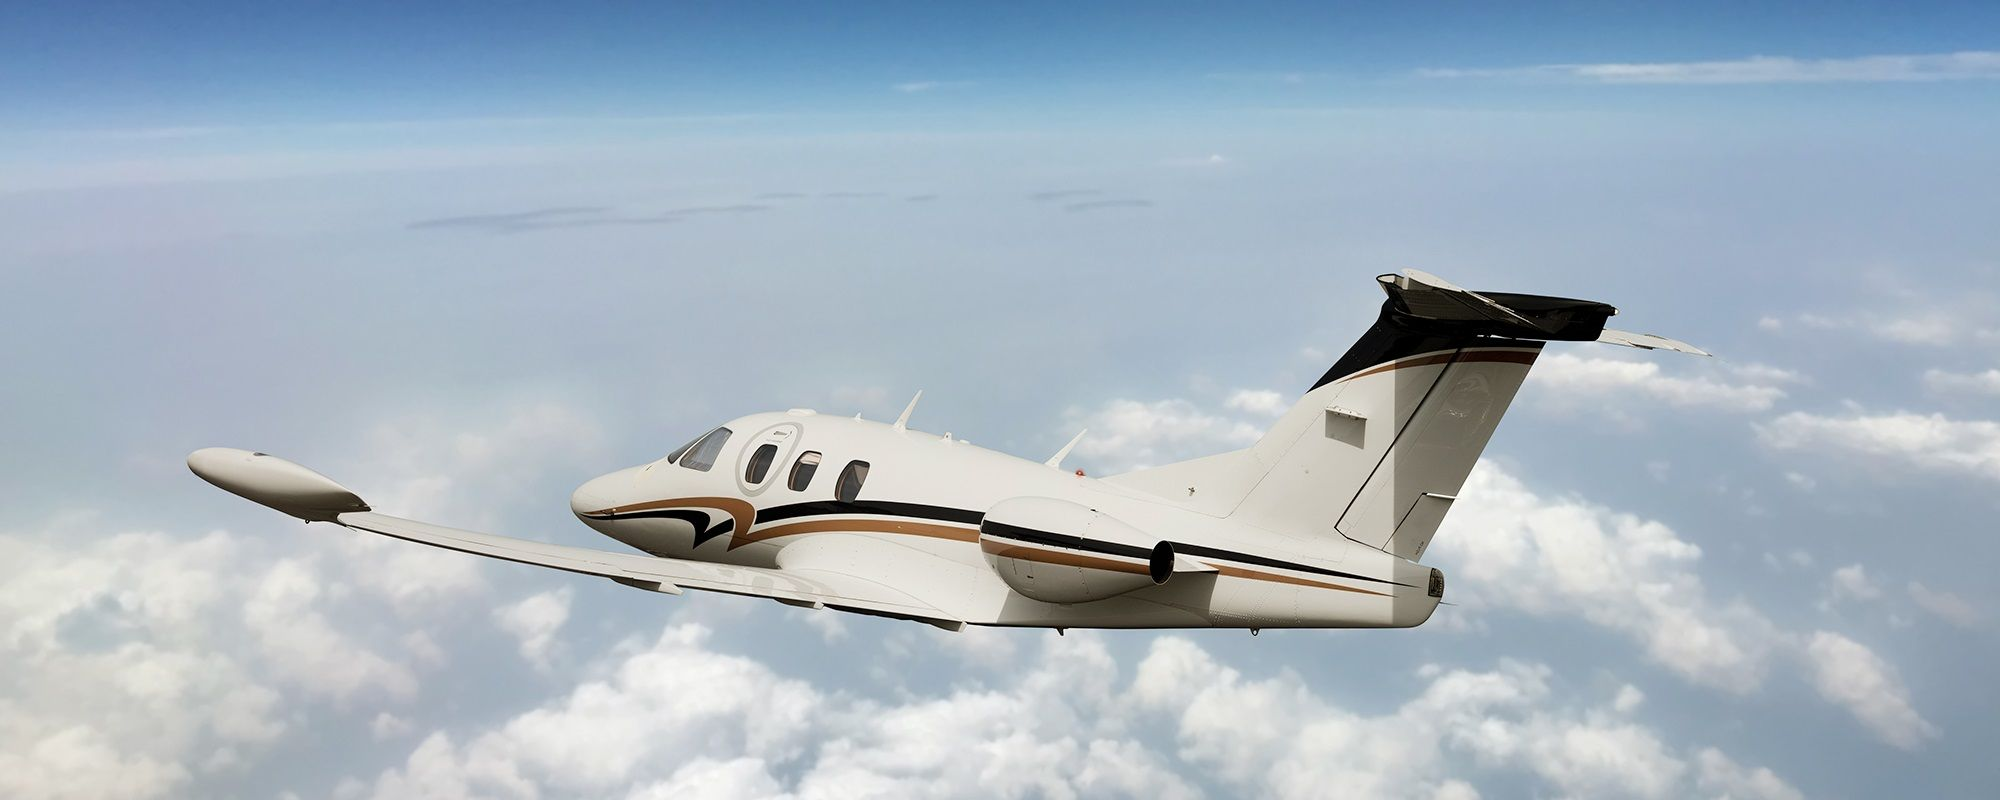 The Eclipse 500 is a four-passenger very light jet designed